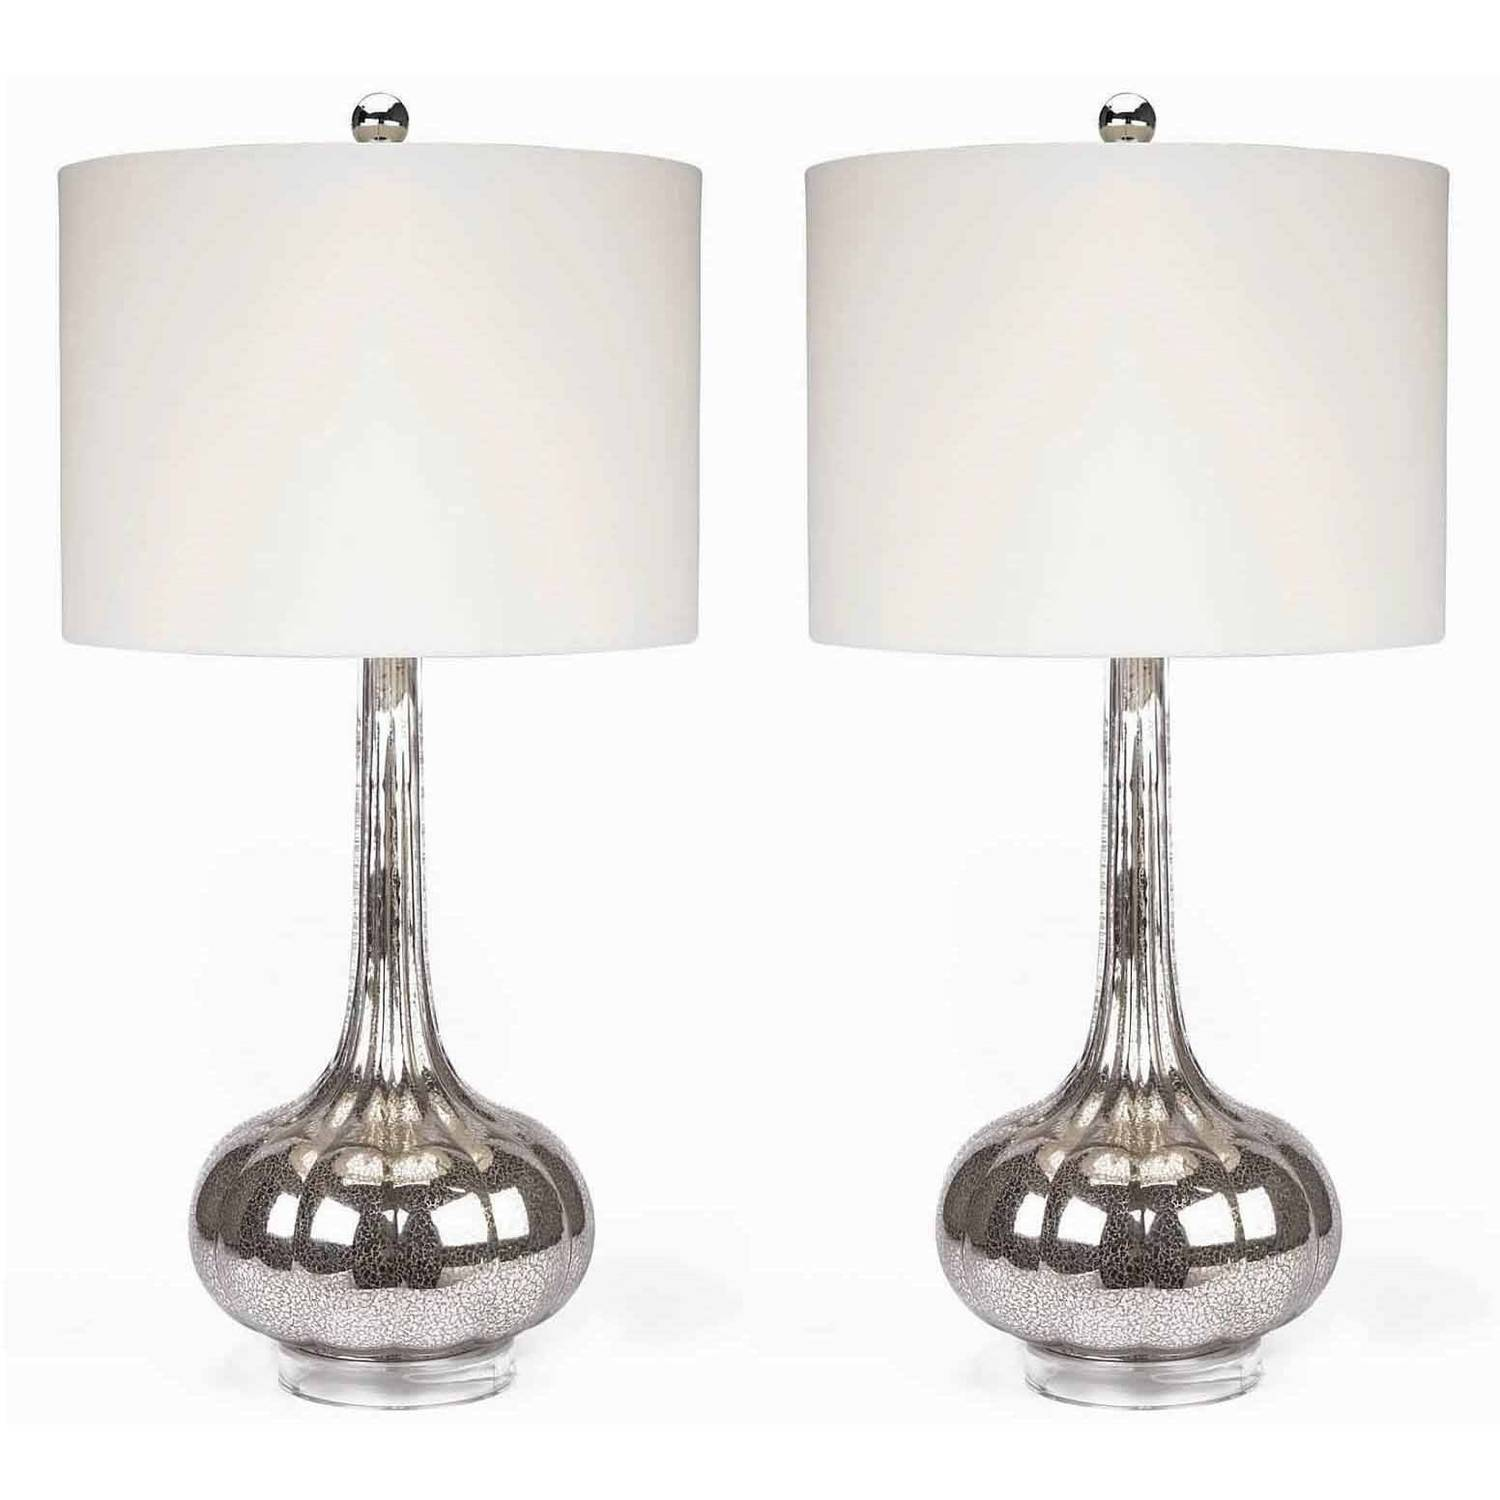 Devon and Claire Infinite Antiqued Glass Table Lamp, Set of 2